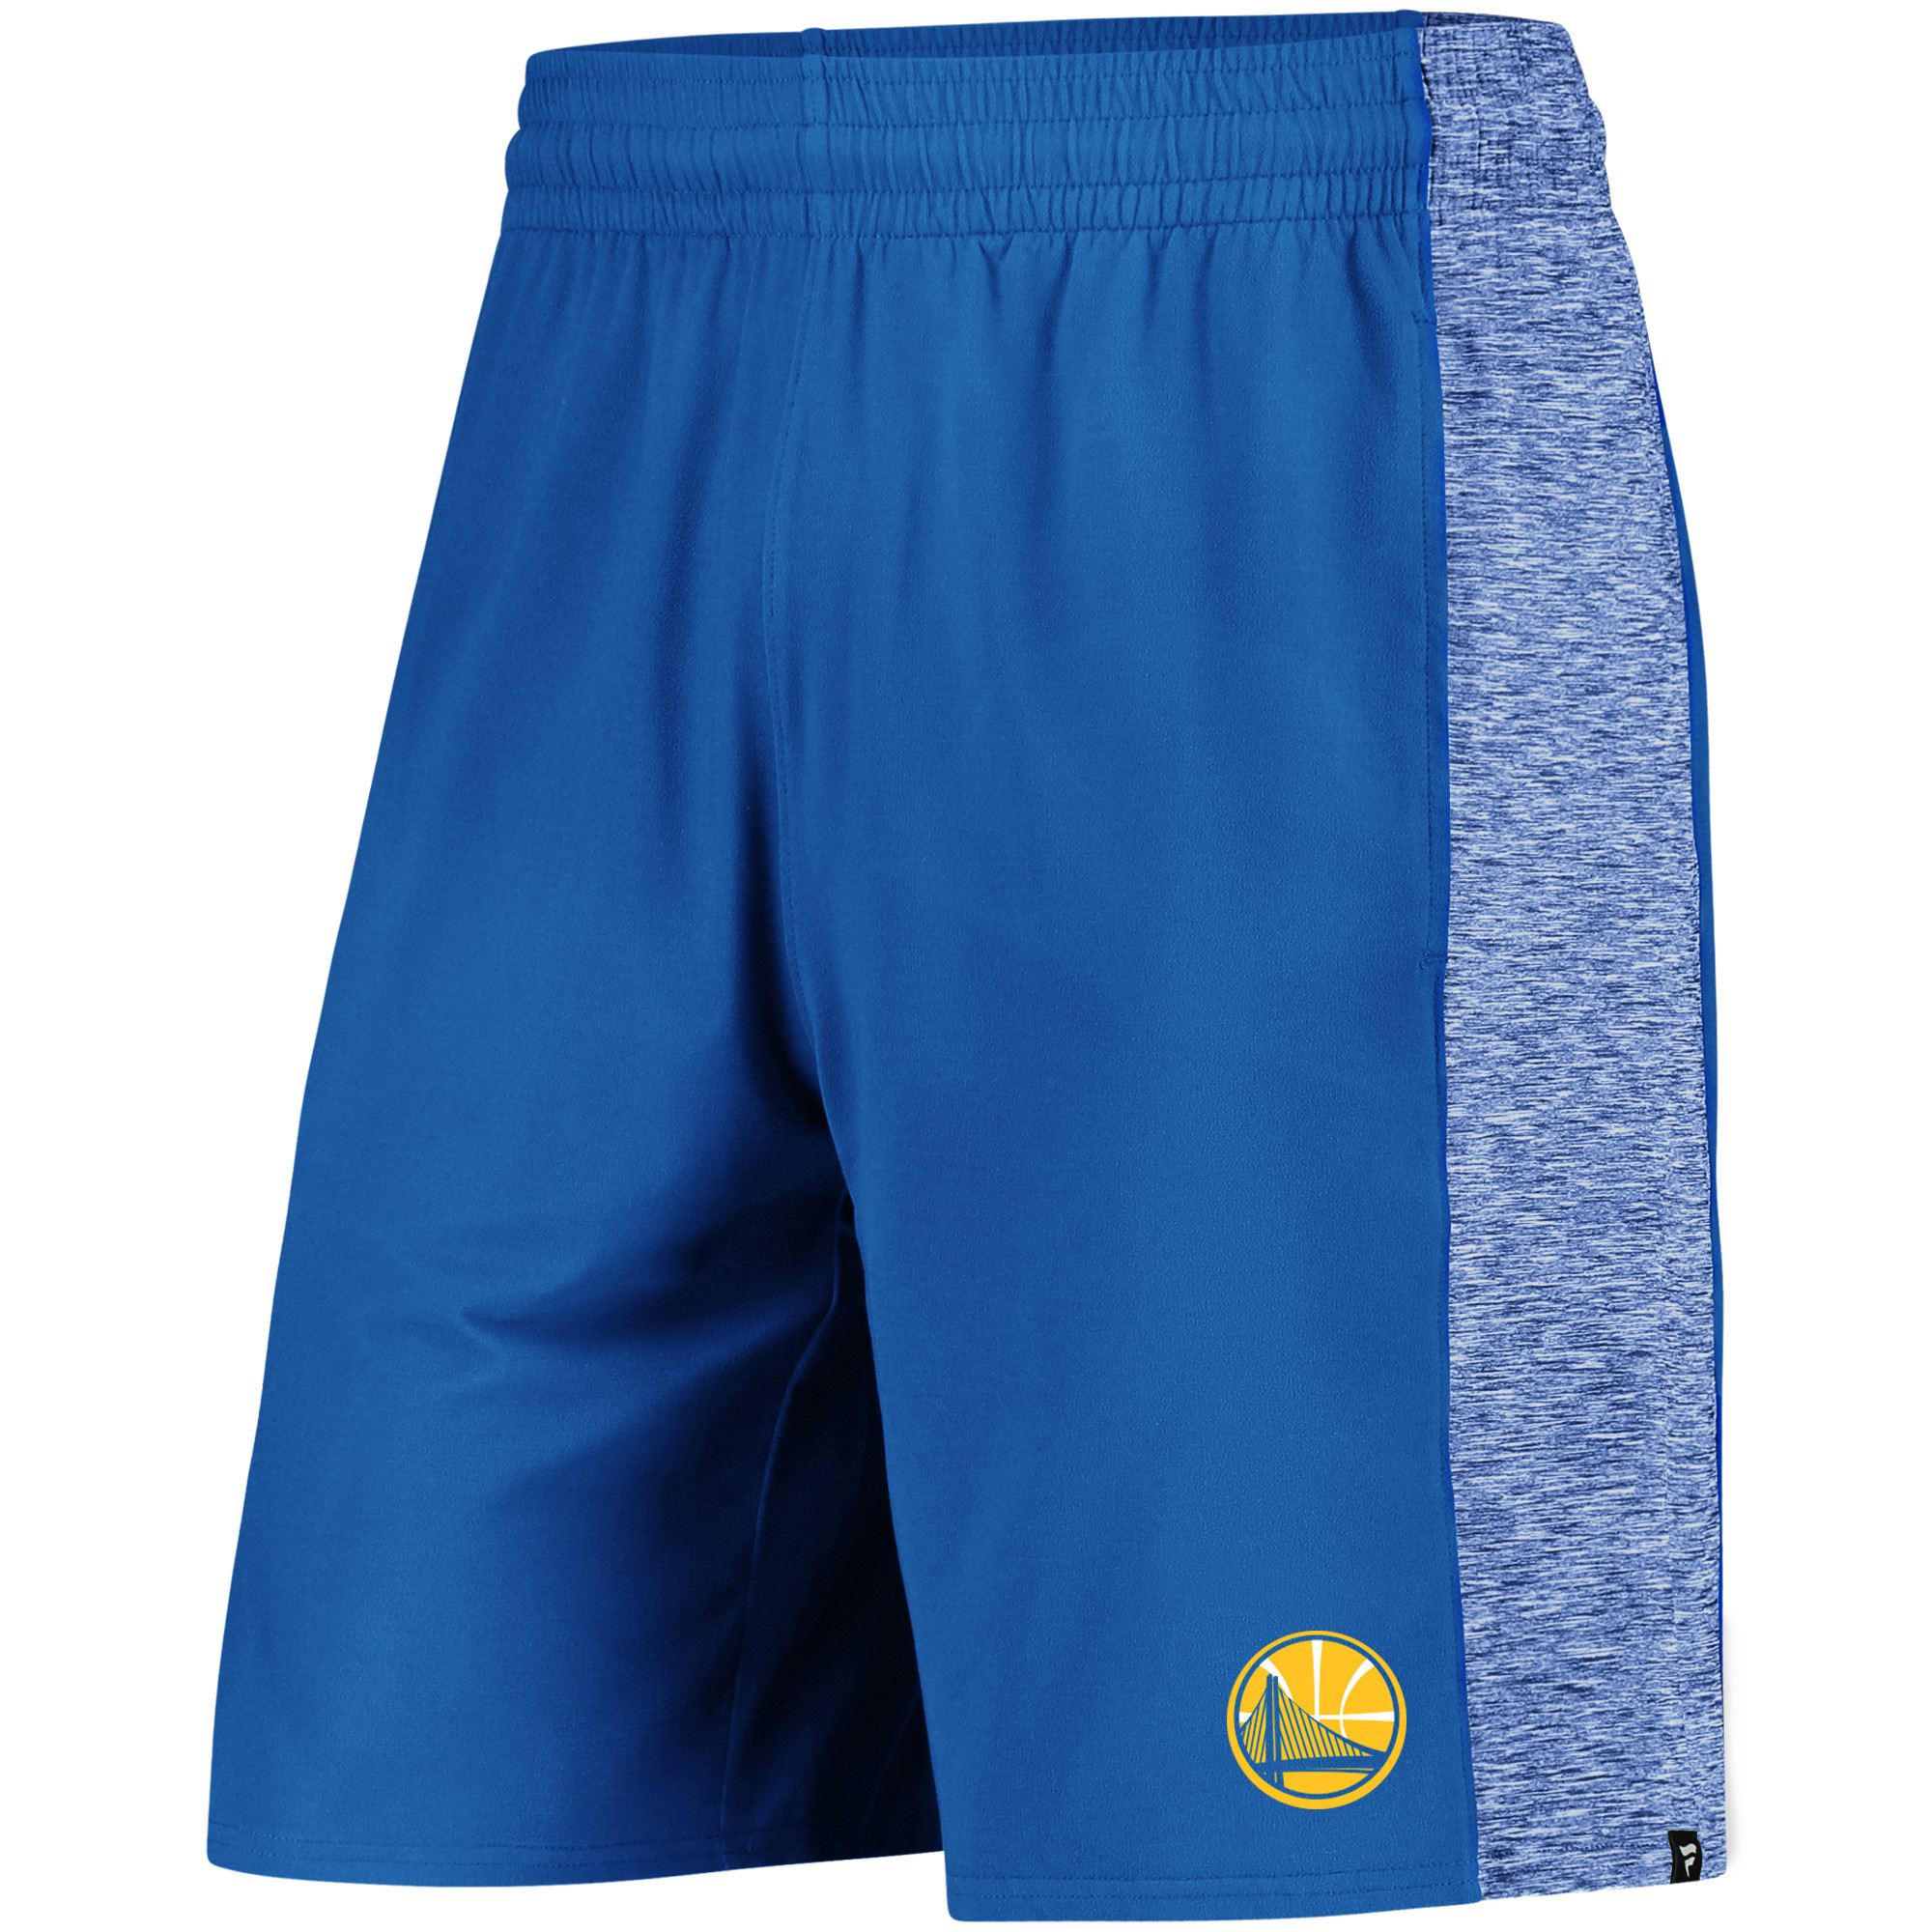 Golden State Warriors Fanatics Branded Made to Move Shorts - Royal